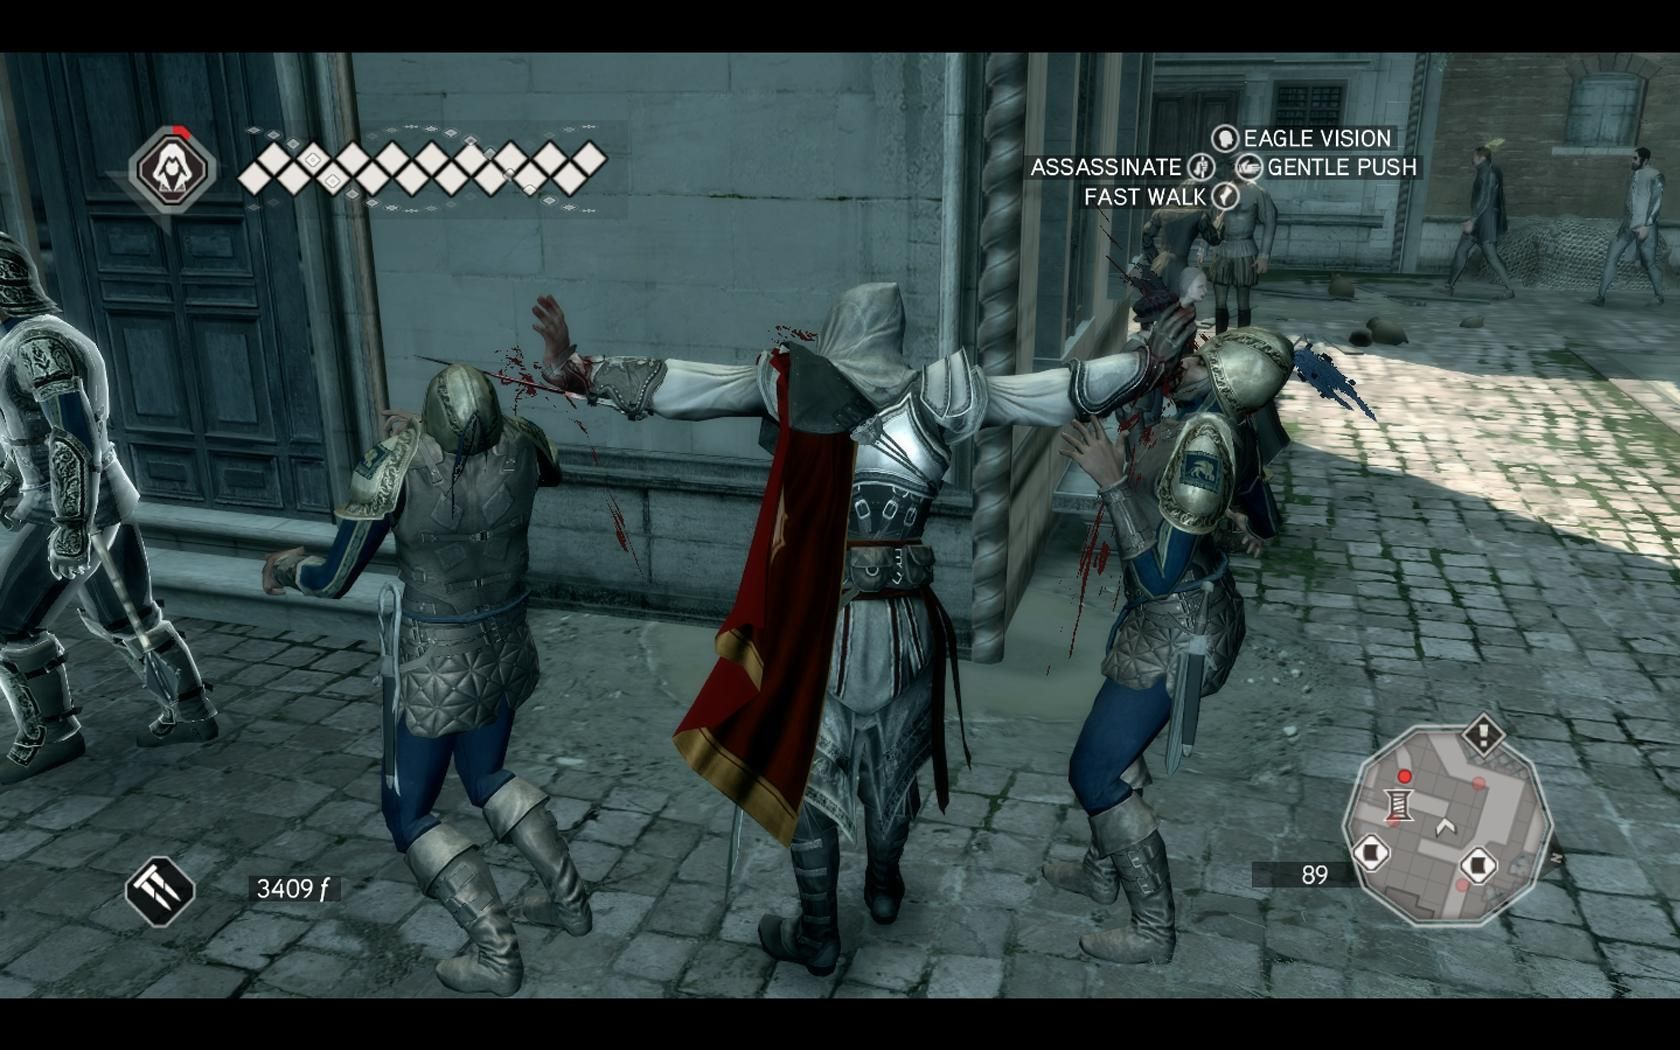 Assassin S Creed Gameplay Google Search Assassins Creed Ii